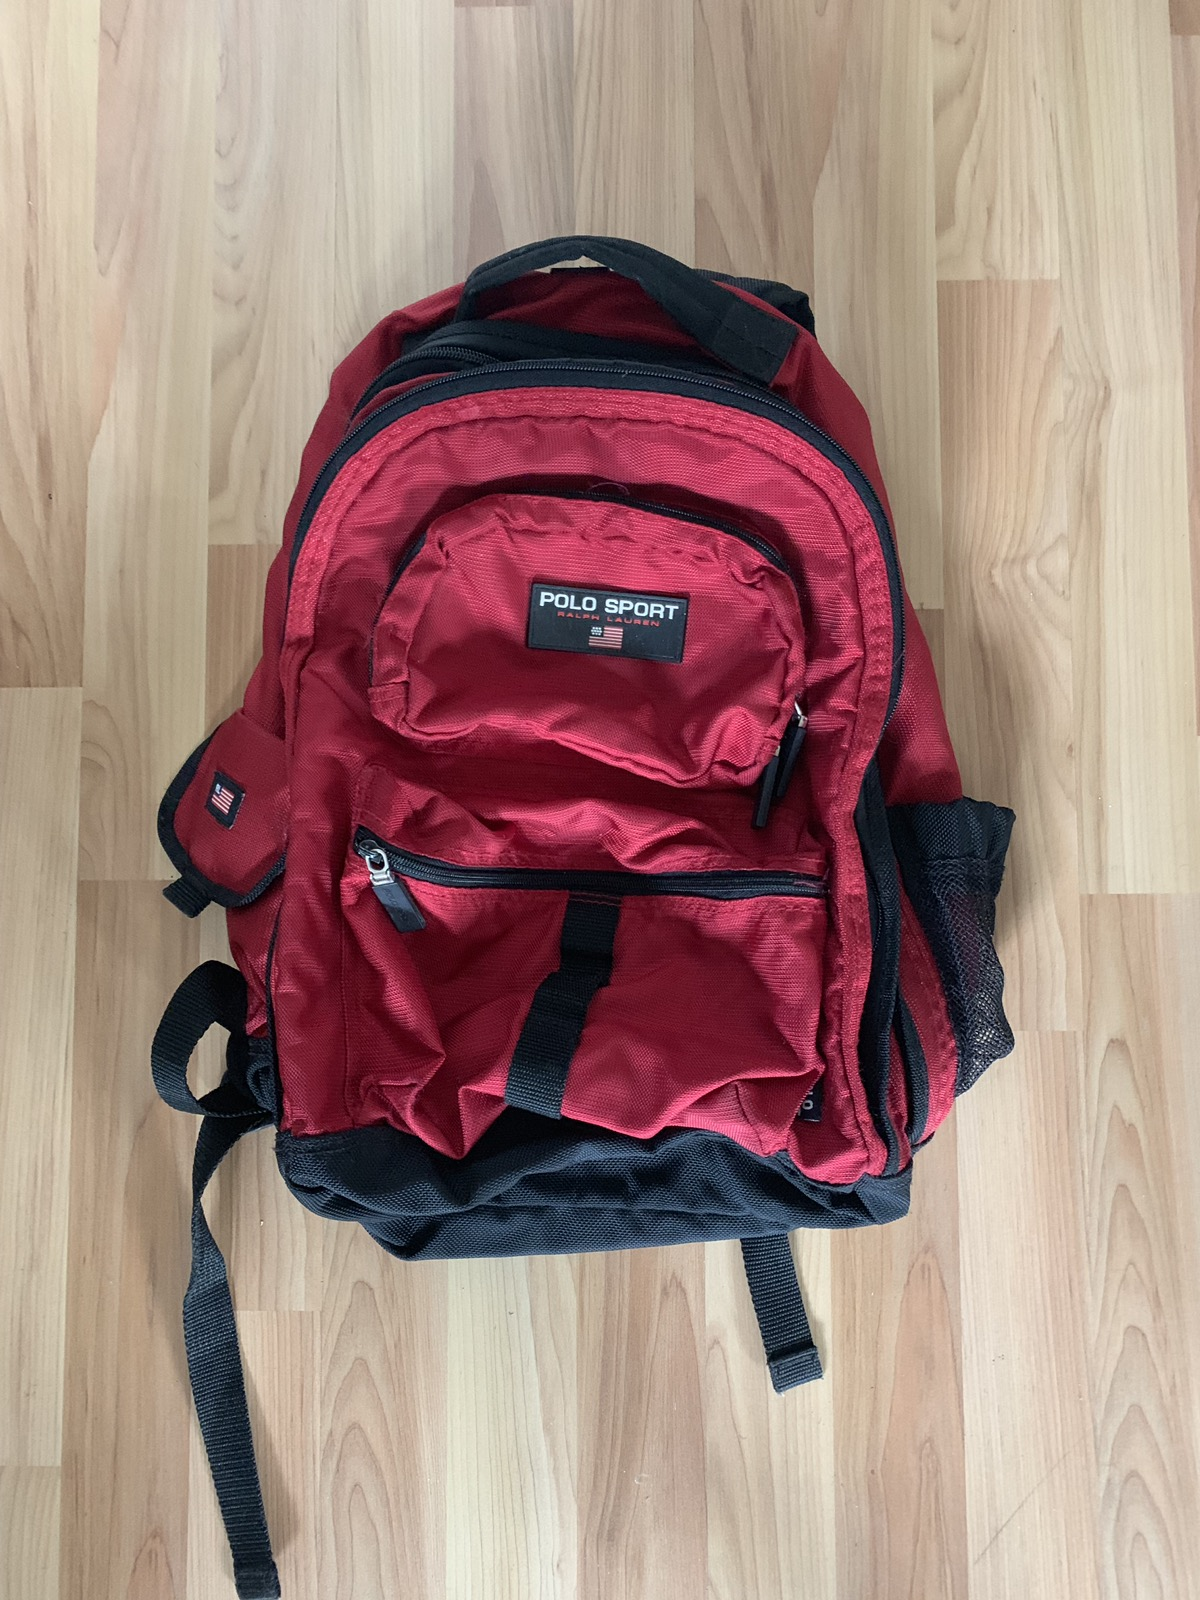 e4a795707 Polo Sport Backpack Red | Building Materials Bargain Center